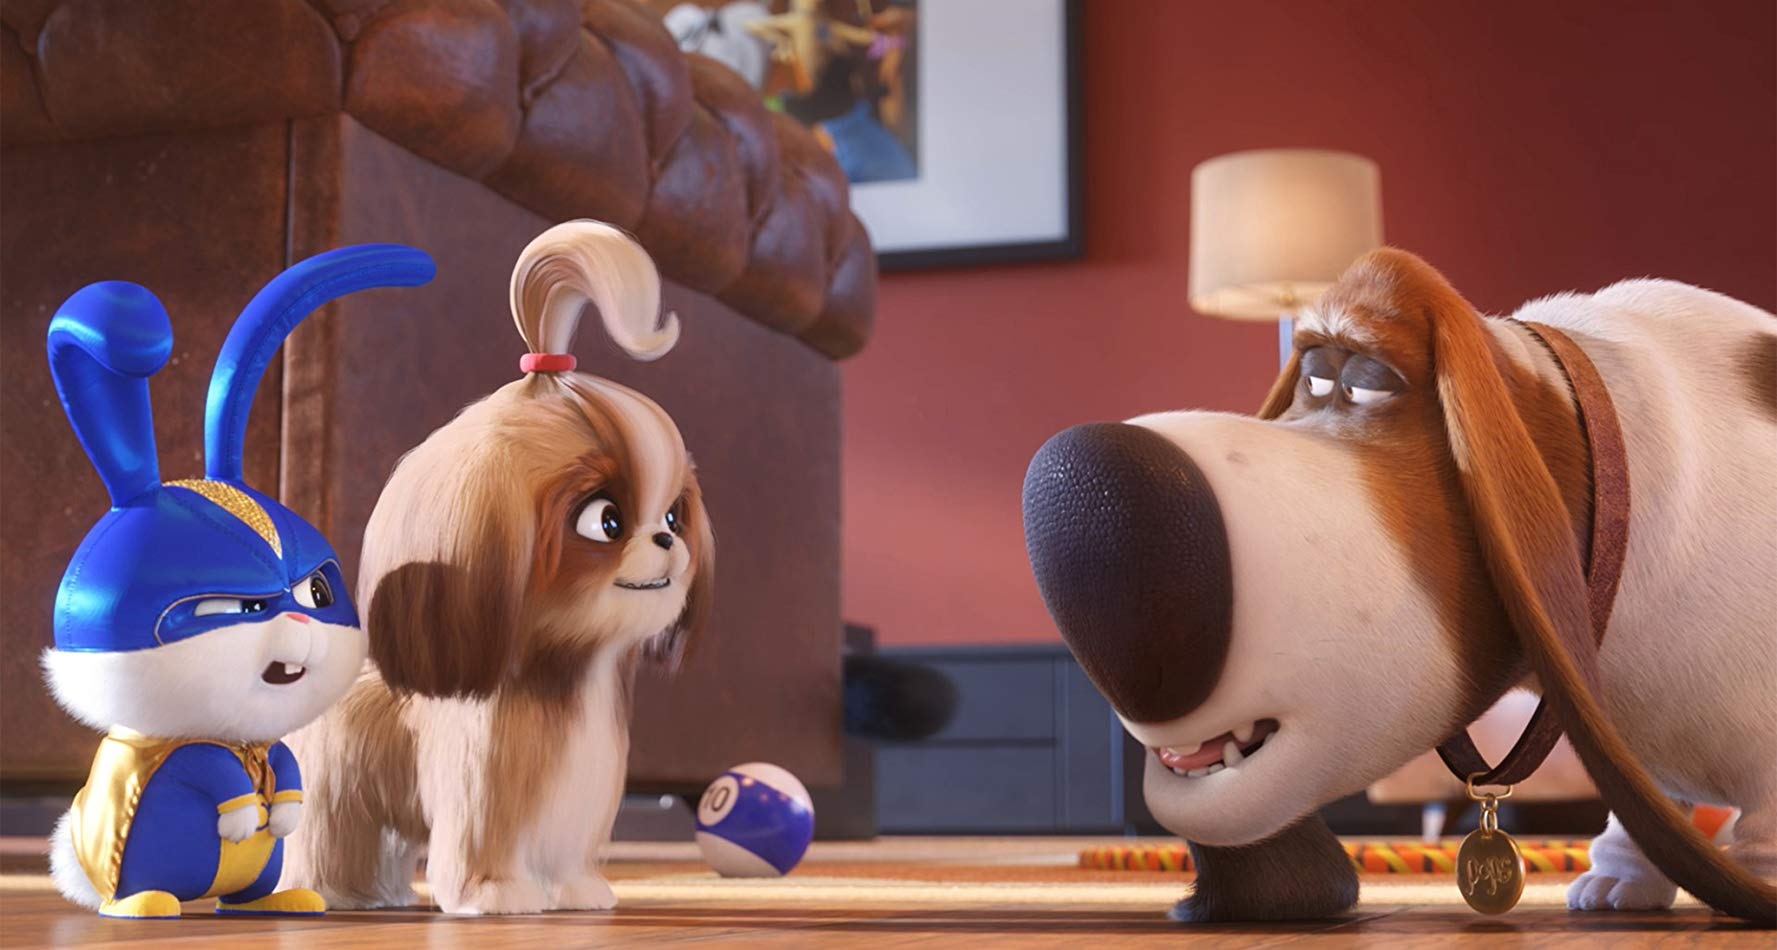 [News] THE SECRET LIFE OF PETS: OFF THE LEASH Ride Arriving in 2020